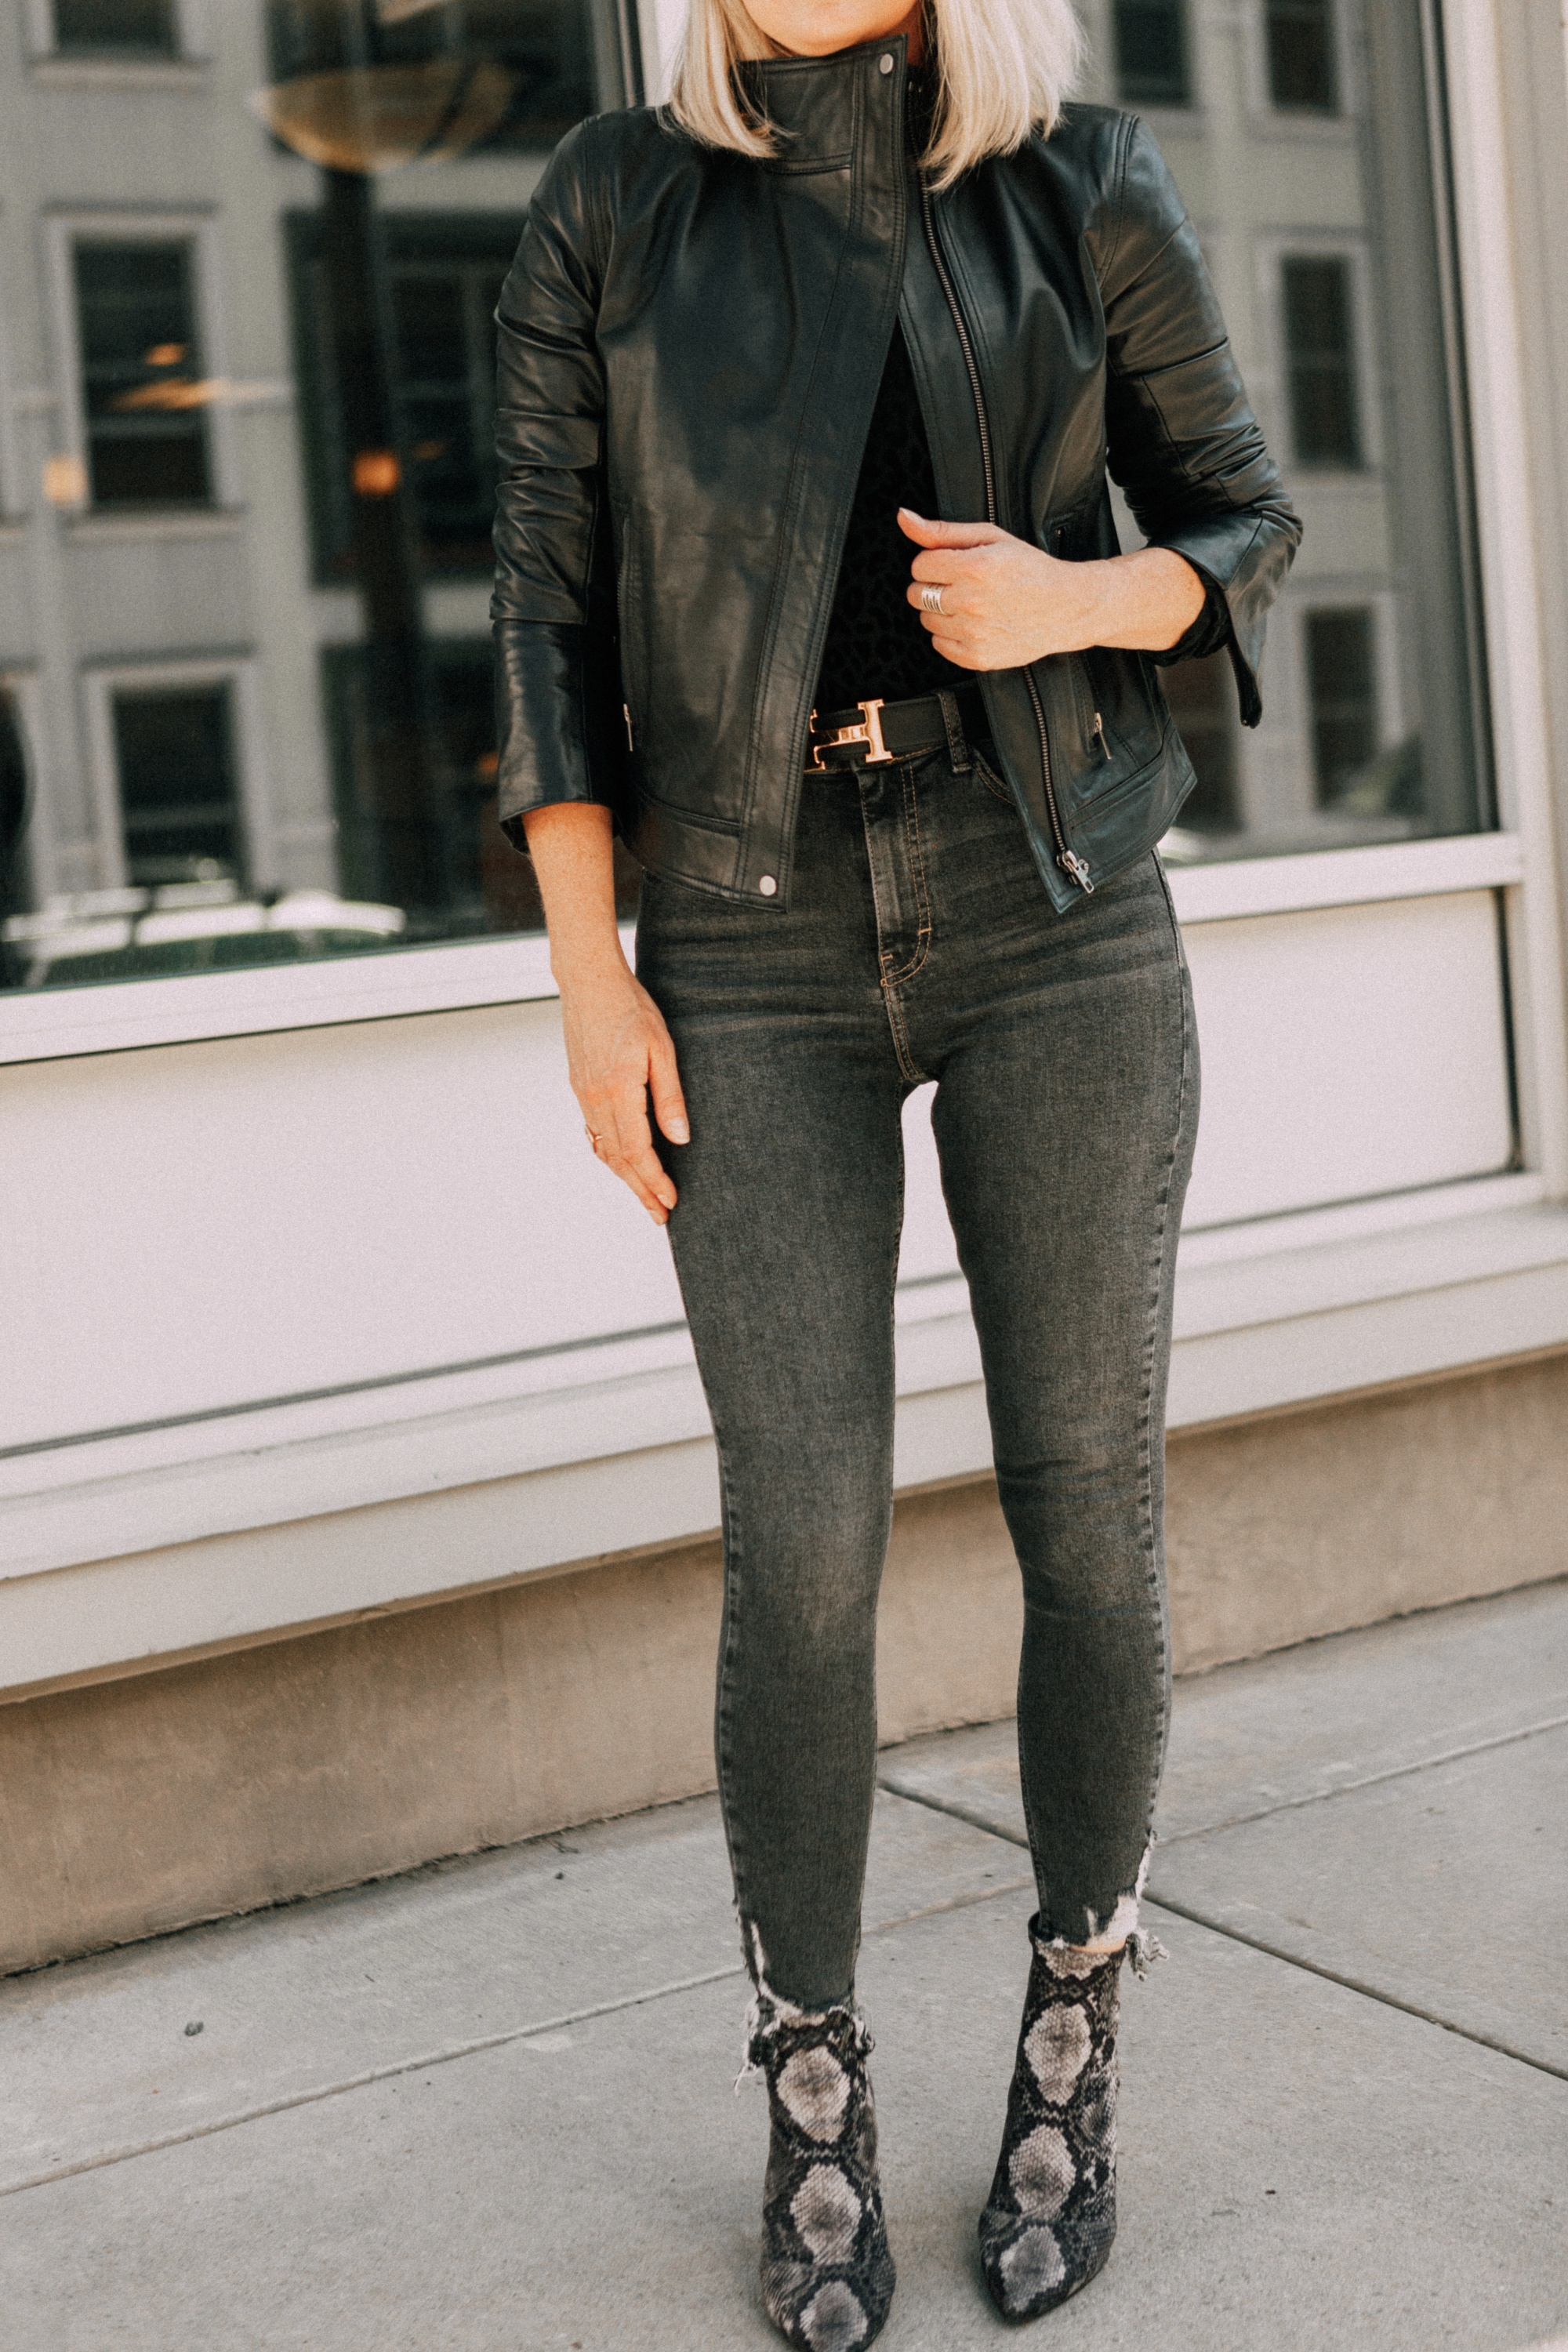 Leather Moto Jacket, Fashion blogger over 40 Erin Busbee of BusbeeStyle.com featuring the Chelsea28 black leather jacket from the Nordstrom Anniversary Sale 2019 styled with the velvet leopard bodysuit, Topshop jeans, and Charles Davidson python print booties from Nordstrom in Telluride, Colorado